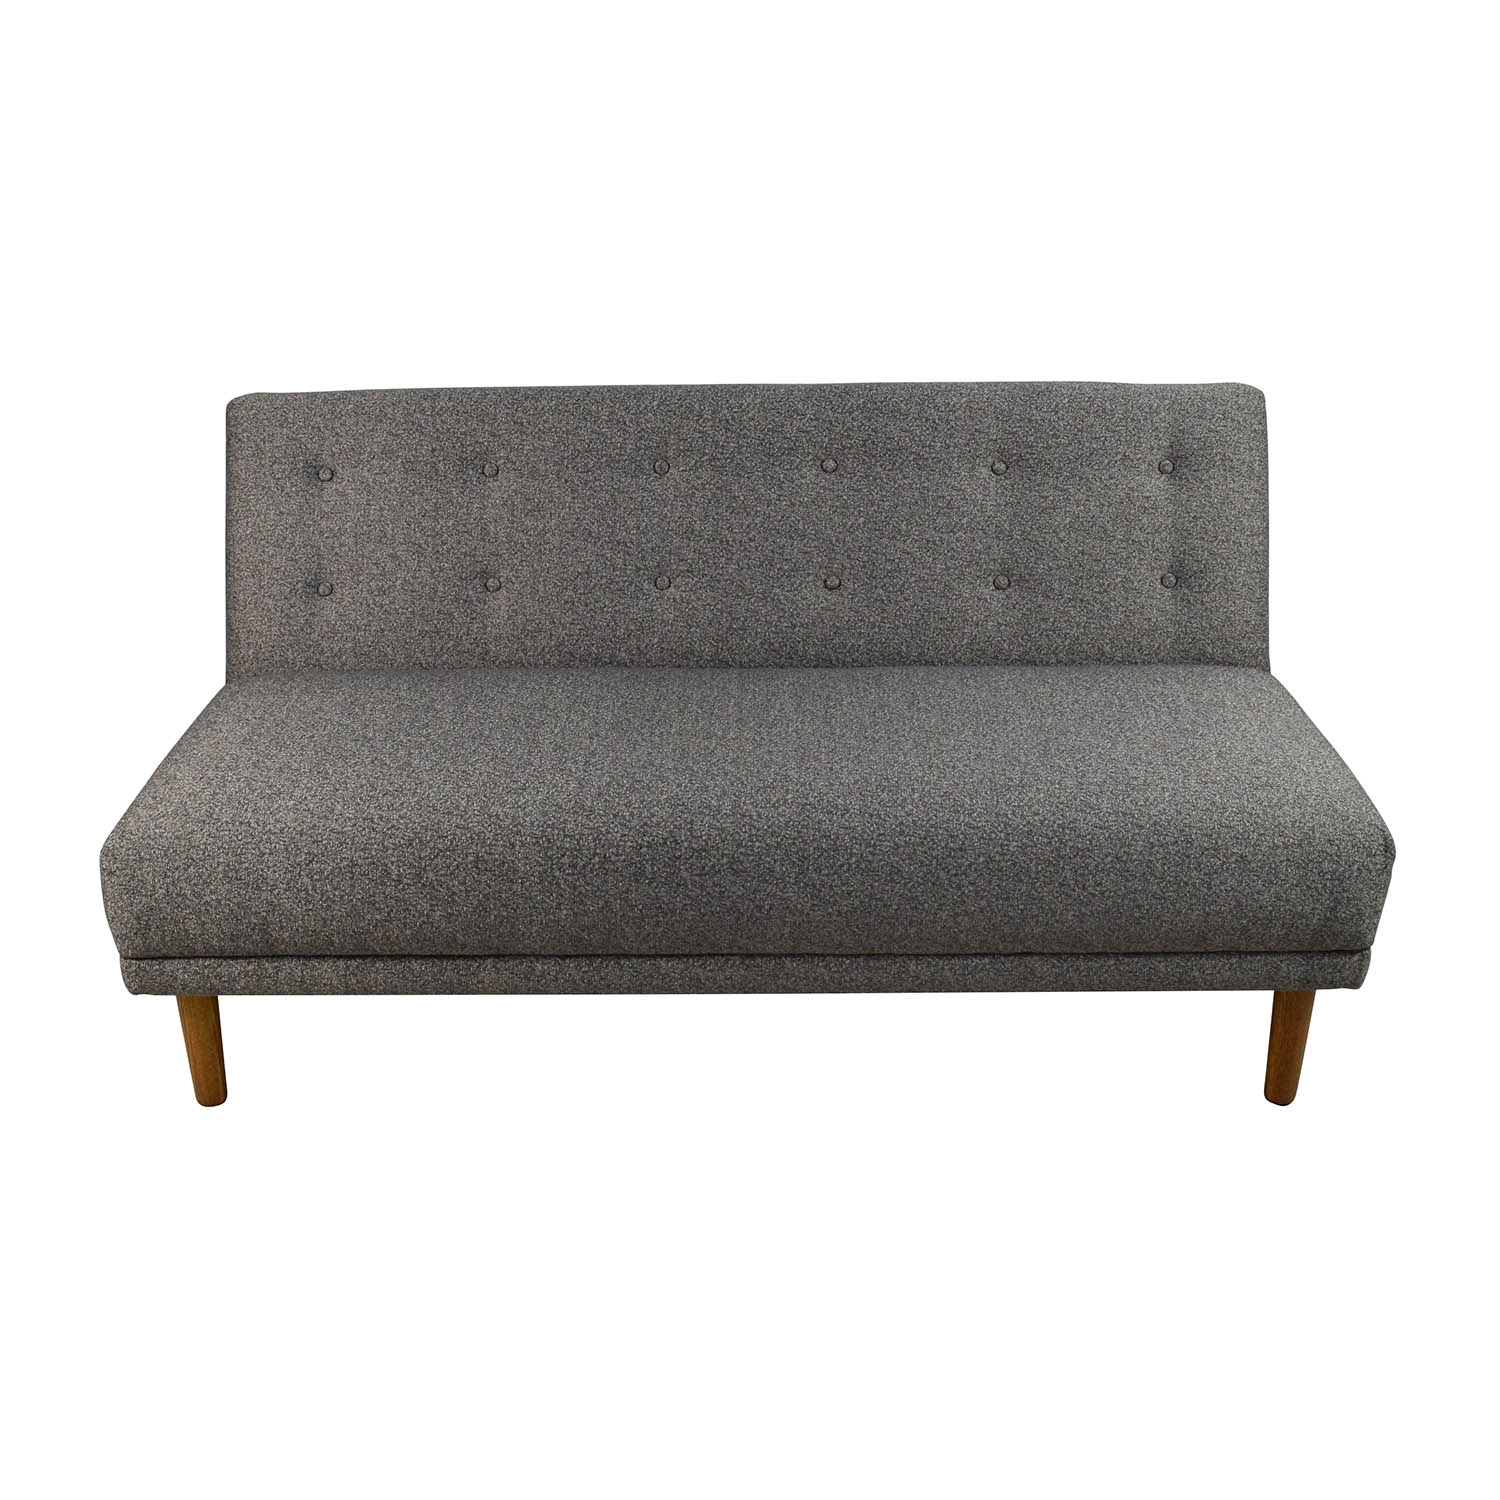 off  west elm west elm retro armless sofa  sofas -  west elm west elm retro armless sofa on sale